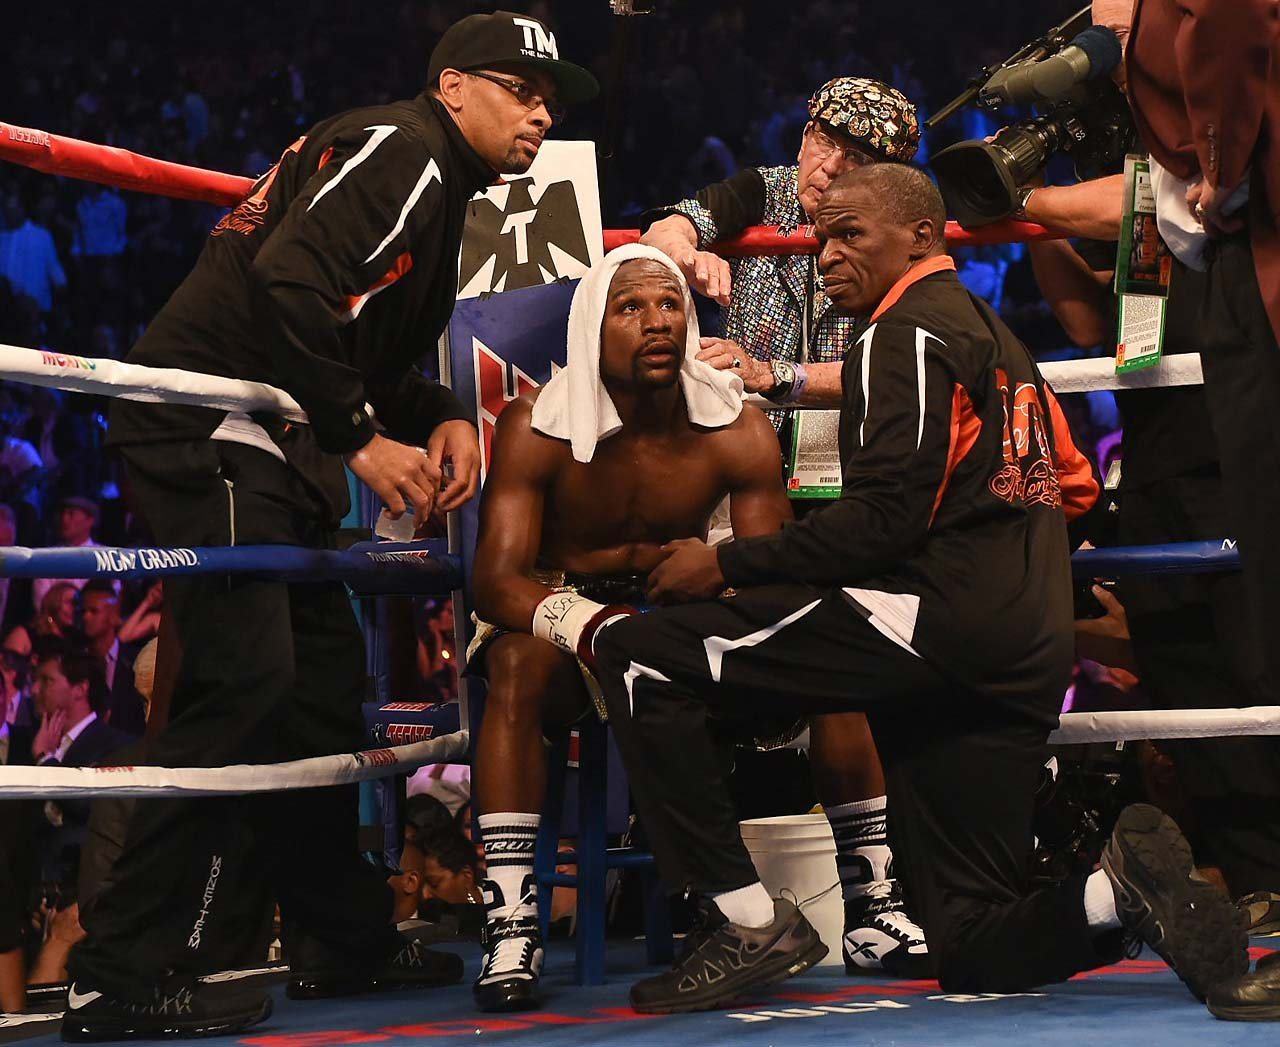 mayweather vs pacquiao fails to live up to hype si com